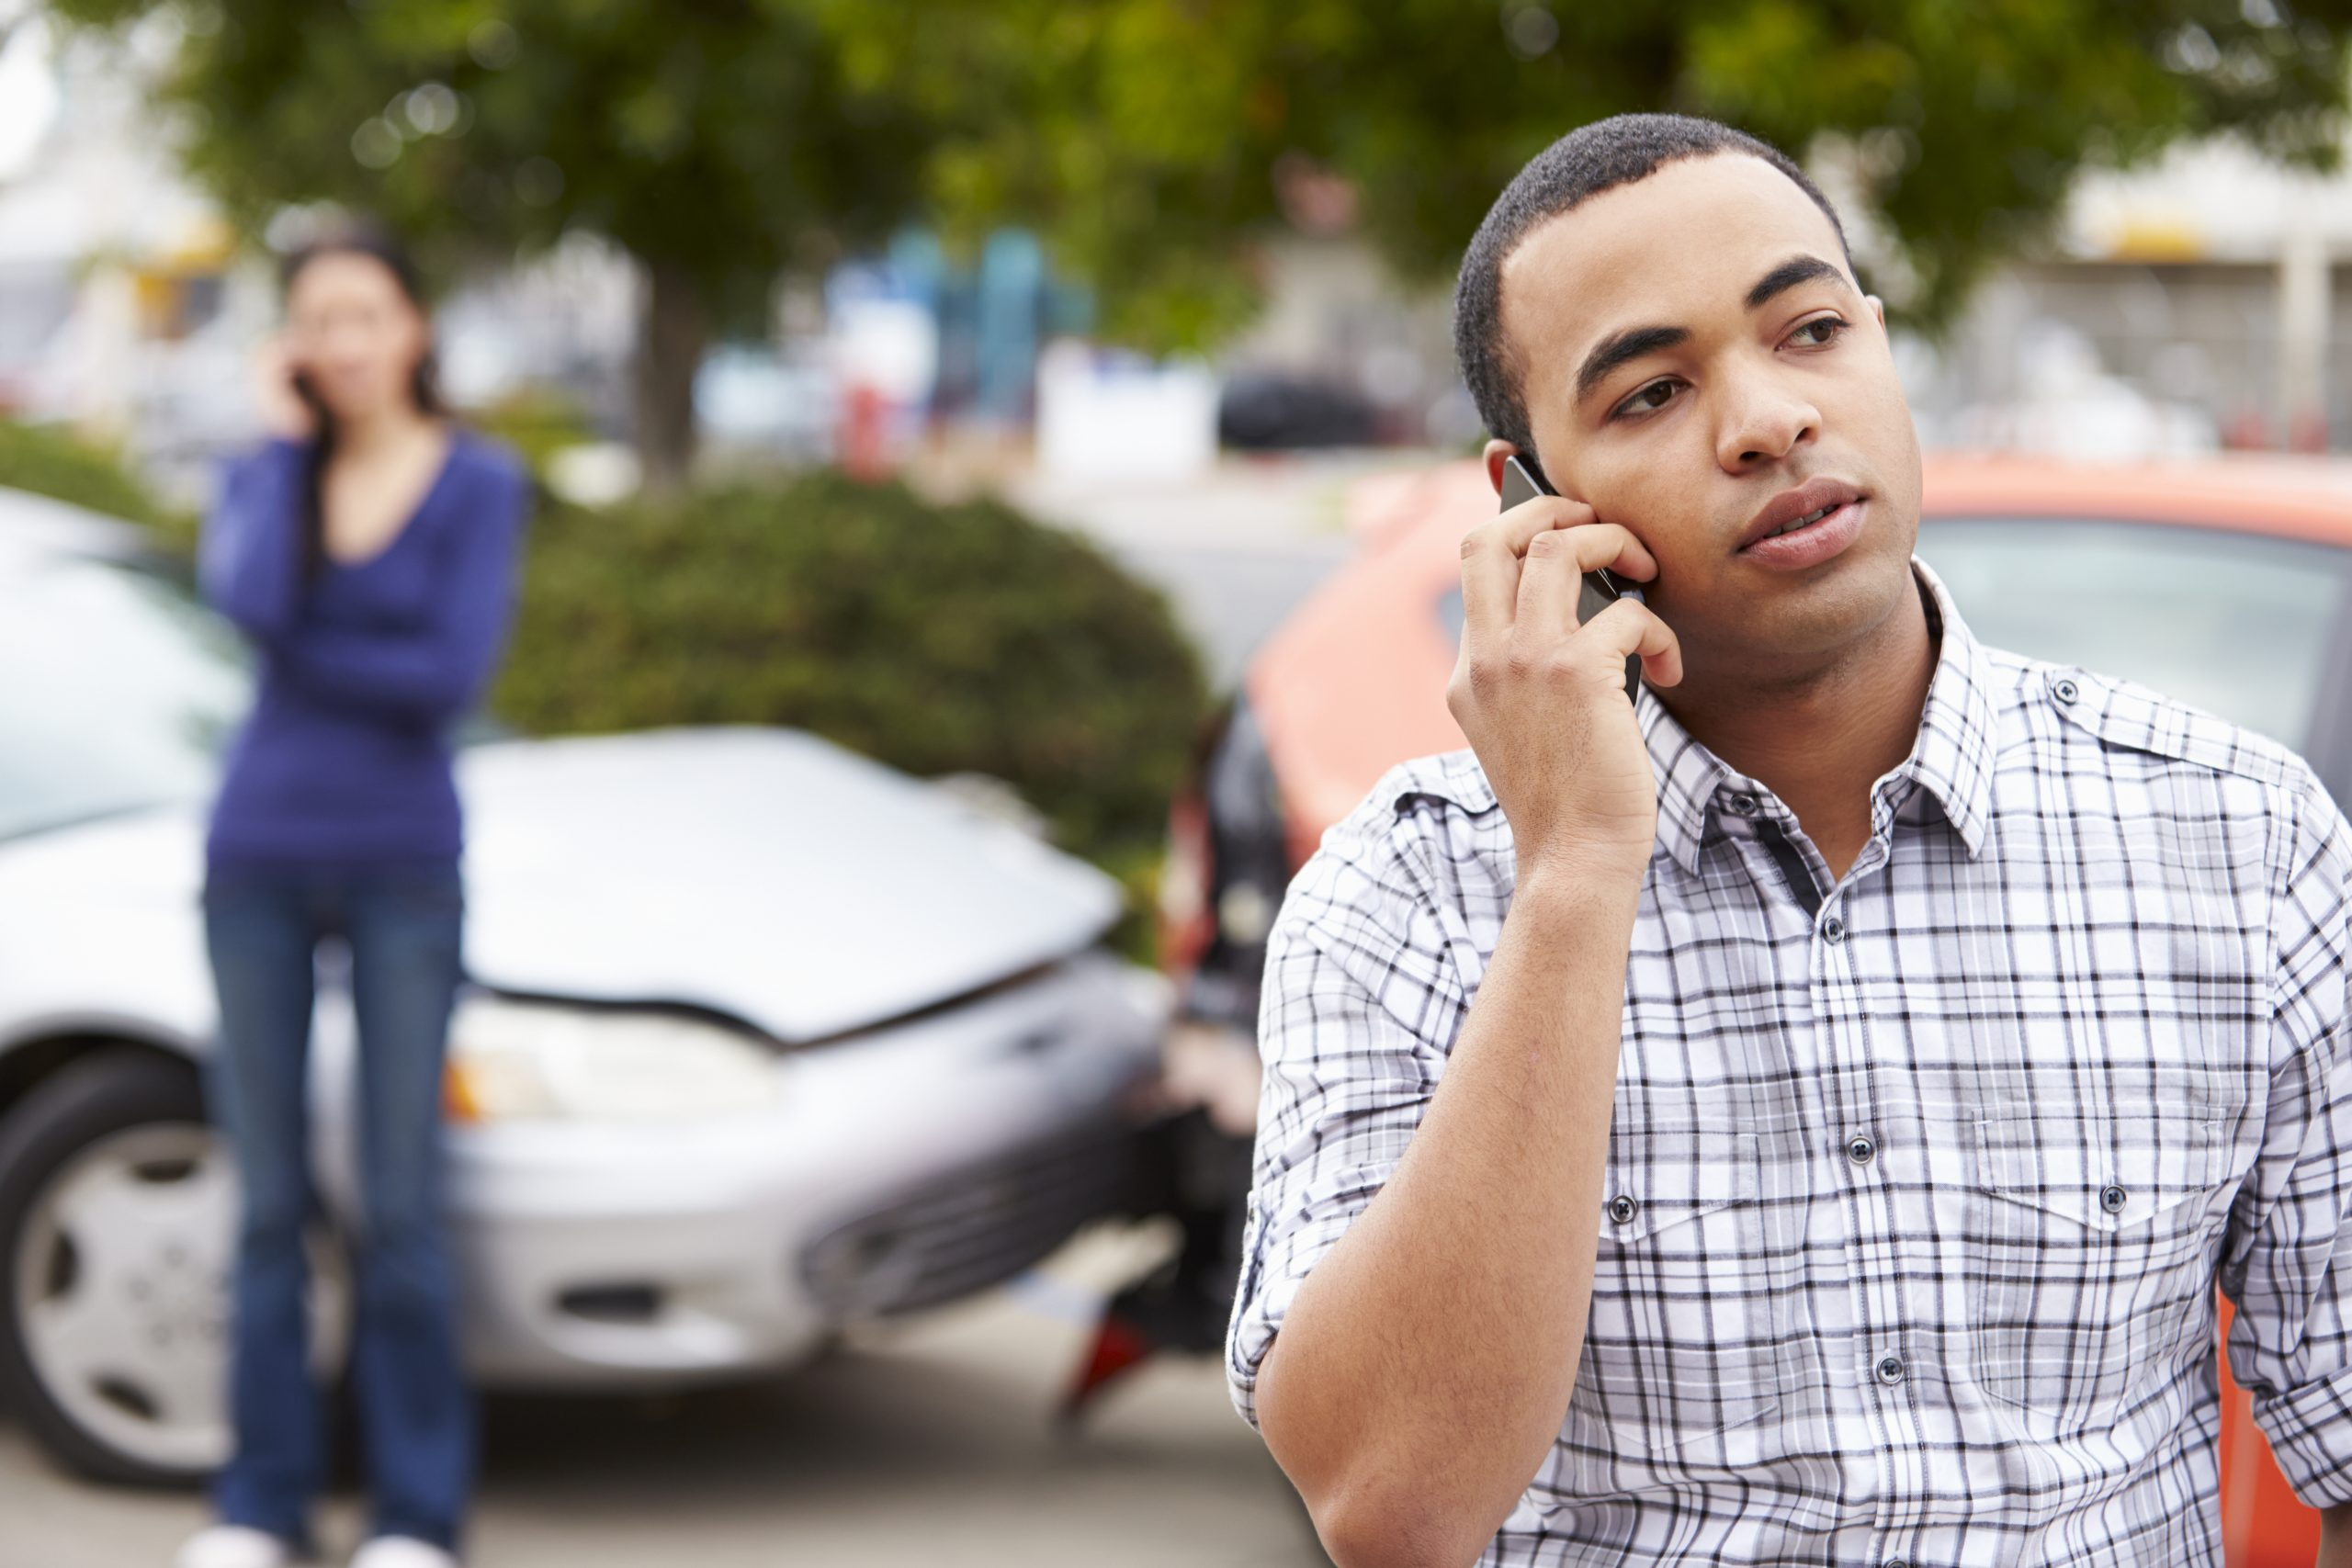 Man on phone at accident scene